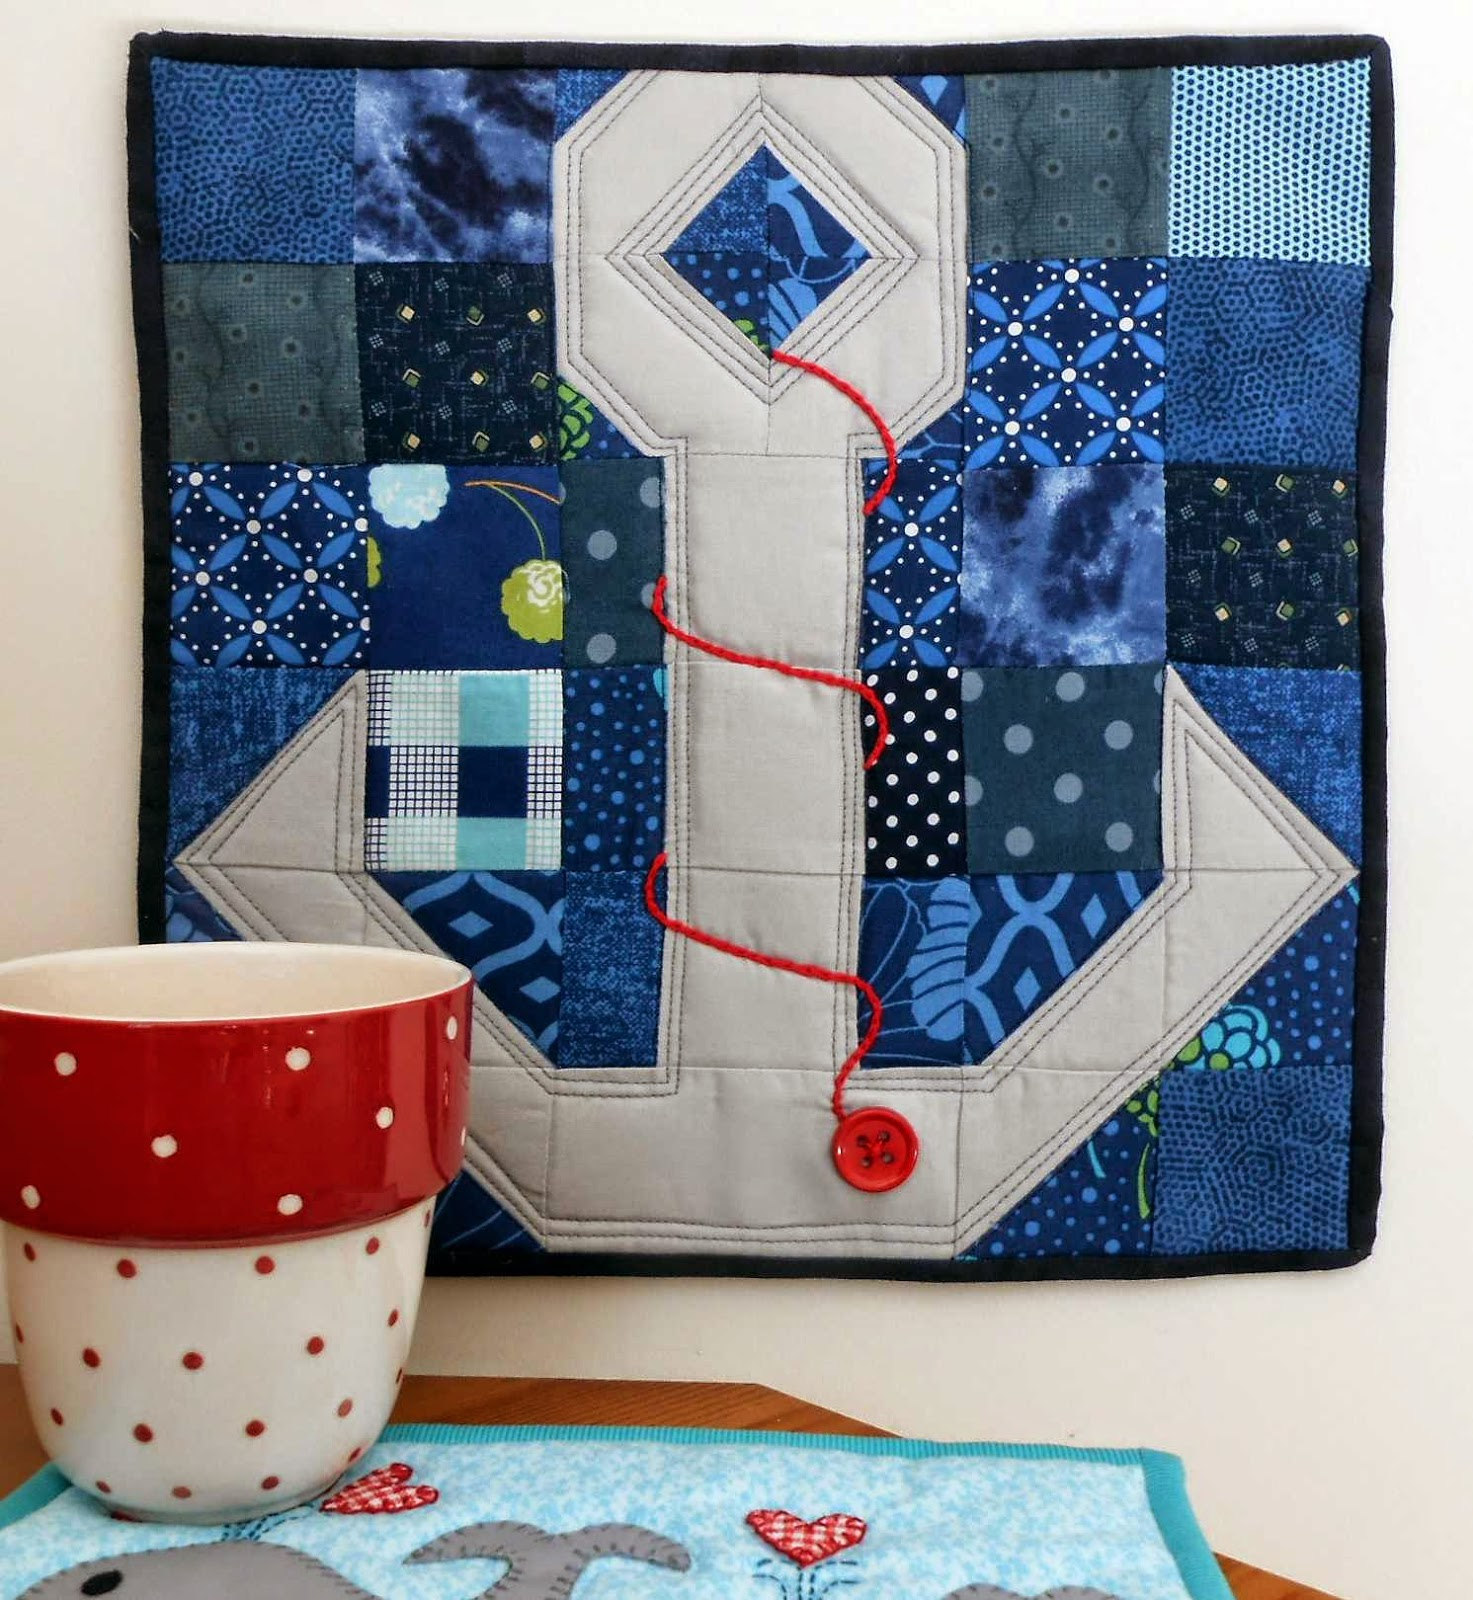 http://www.craftsy.com/project/view/drop-anchor-mini-quilt/216011